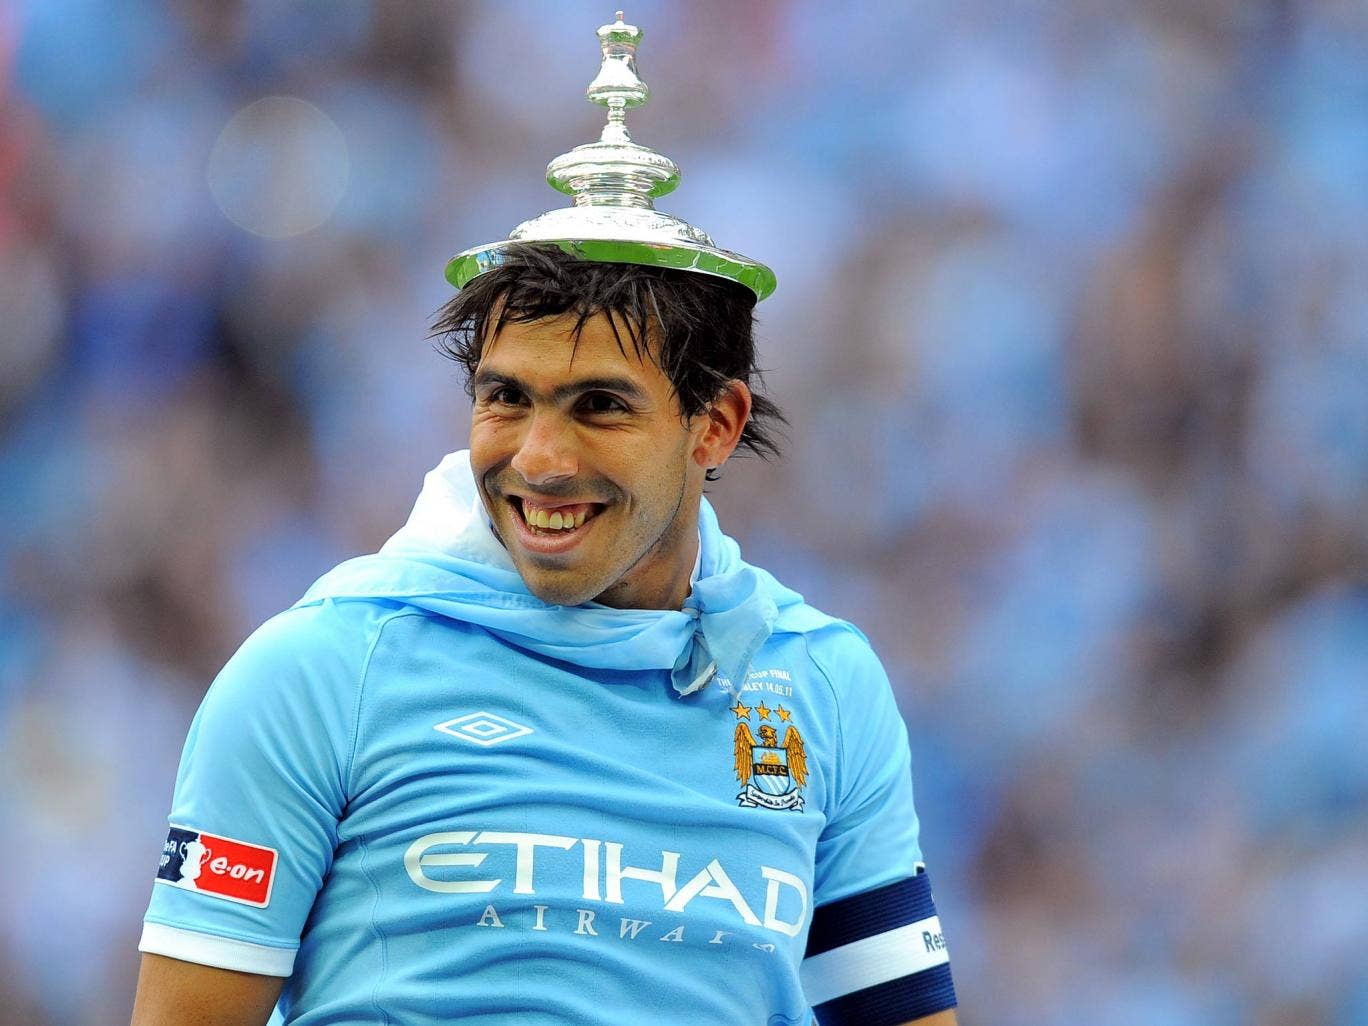 Carlos Tevez with the FA Cup trophy lid upon his head in 2011